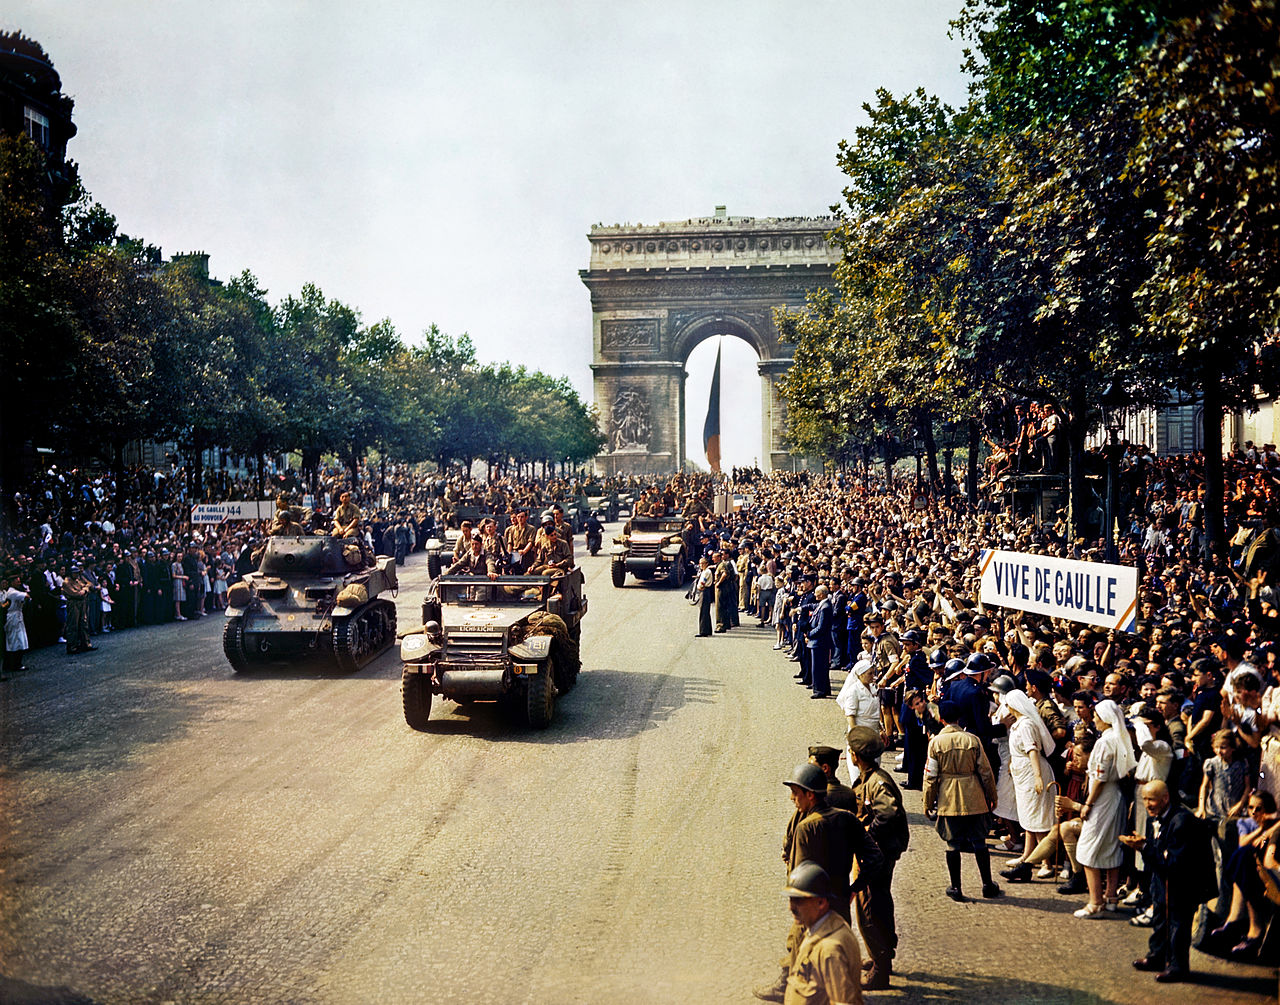 Crowds of French patriots line the Champs Elysees to view Free French tanks and half tracks of General Leclerc's 2nd Armored Division passes through the Arc du Triomphe, after Paris was liberated on August 26, 1944. Among the crowd can be seen banners in support of Charles de Gaulle. (Library of Congress/Wikimedia)